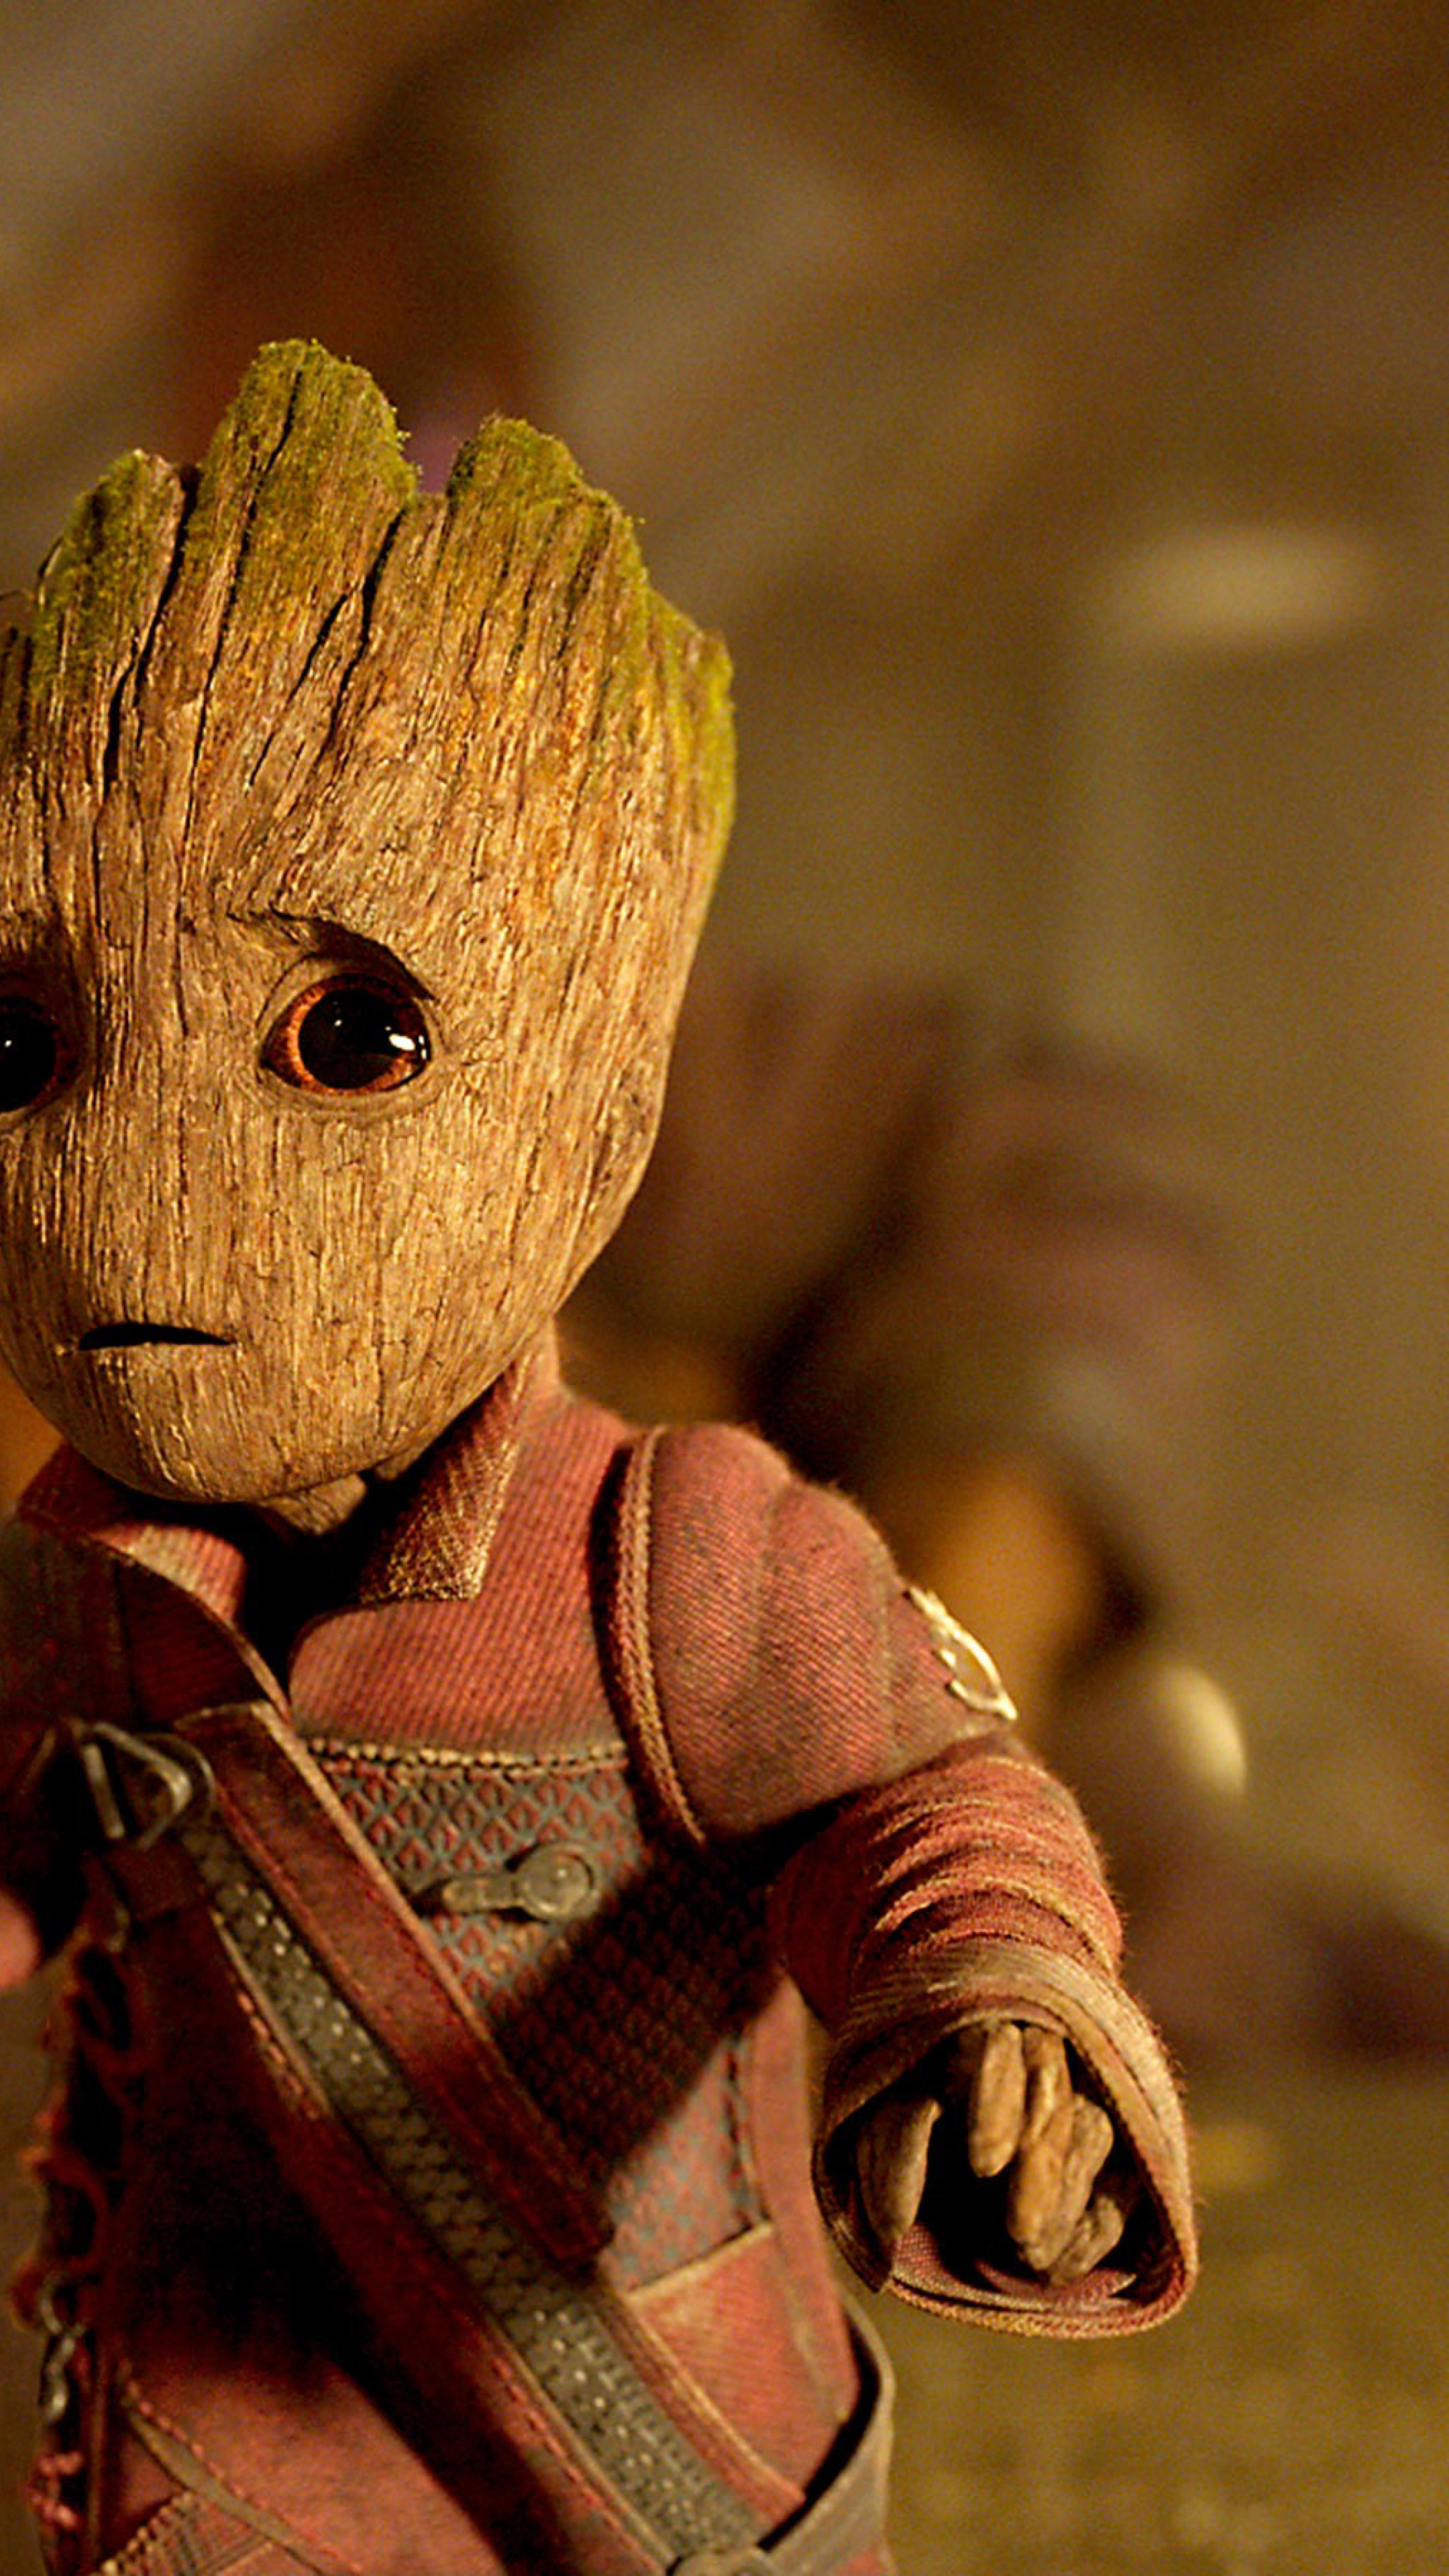 2160x3840 Baby Groot In Guardians Of The Galaxy Vol 2 Sony Xperia